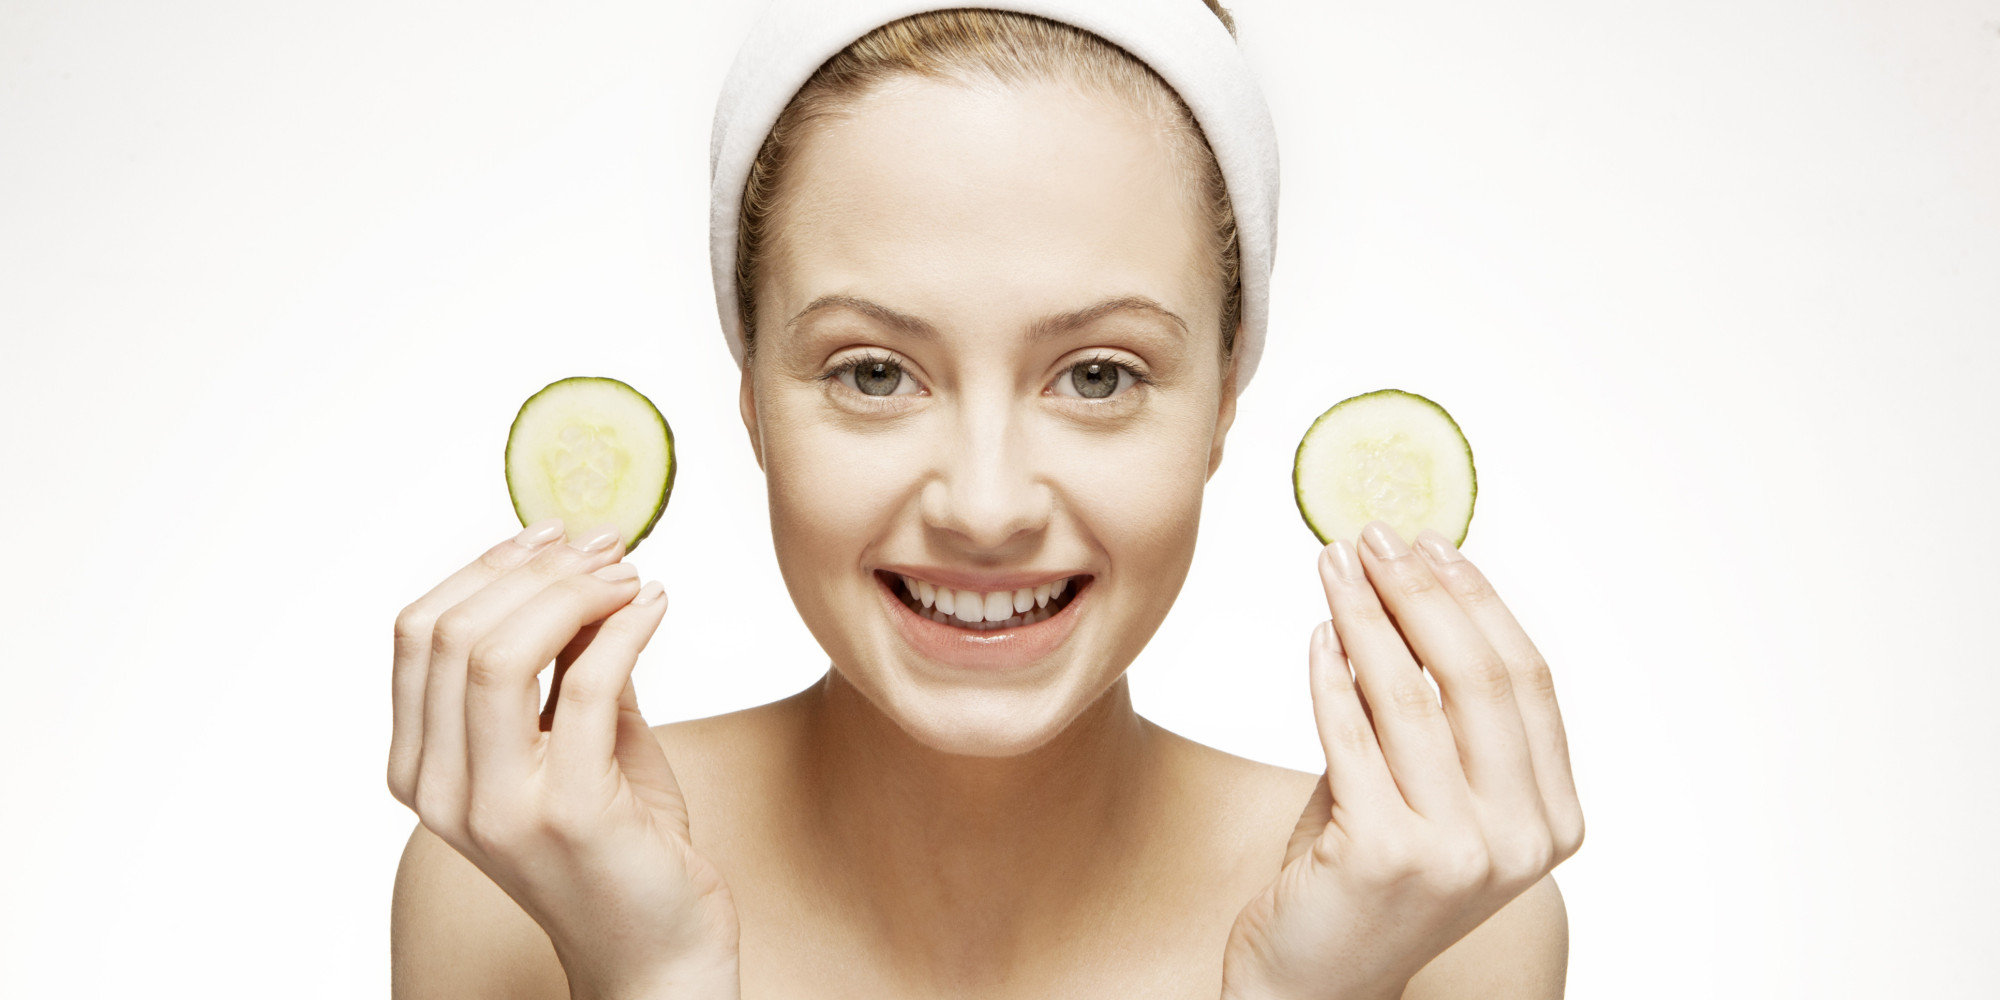 7 reasons why Skin care routine is important in your life